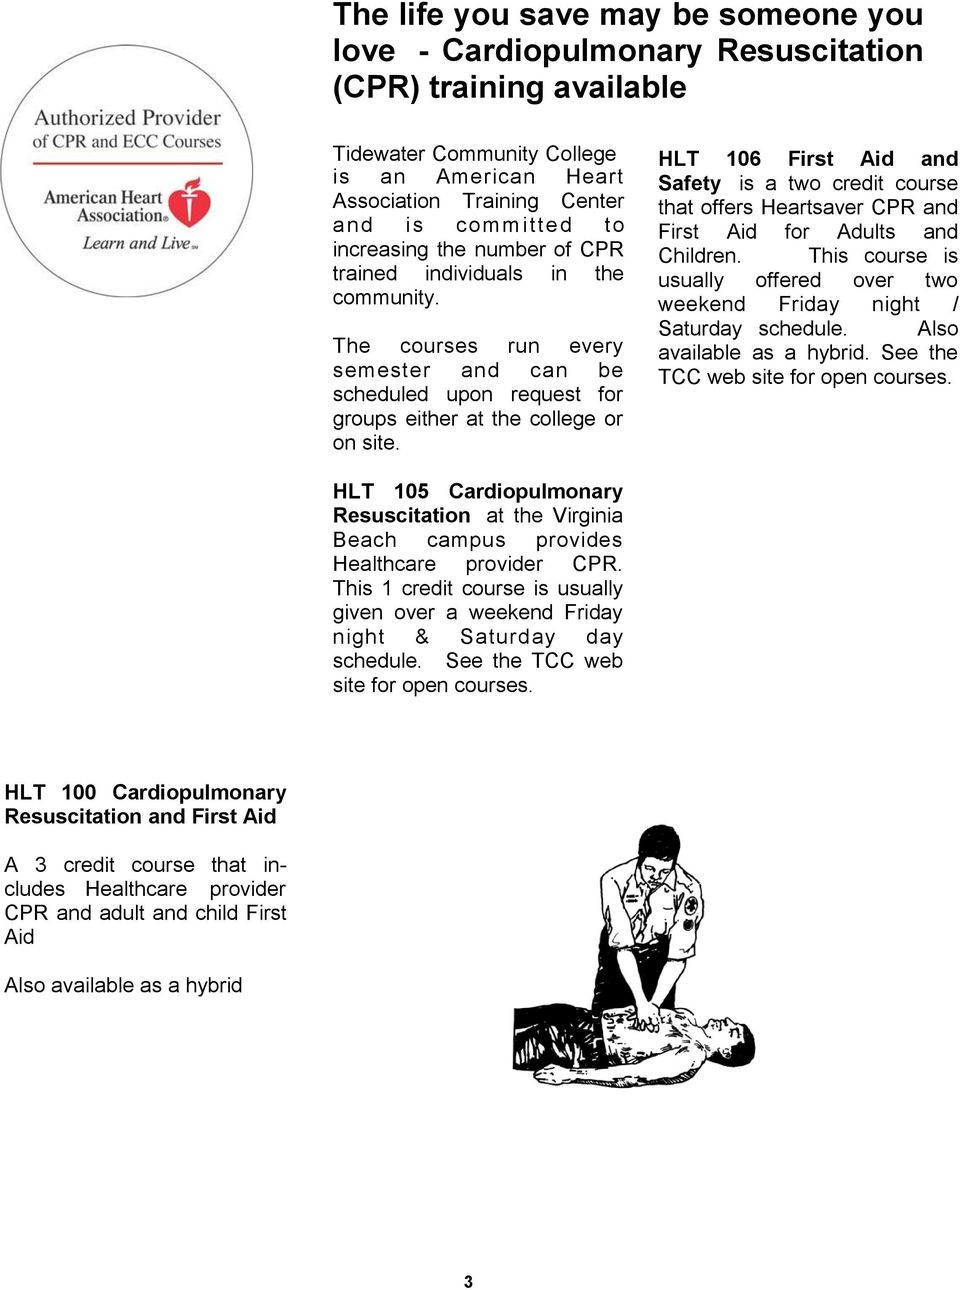 HLT 106 First Aid and Safety is a two credit course that offers Heartsaver CPR and First Aid for Adults and Children. This course is usually offered over two weekend Friday night / Saturday schedule.